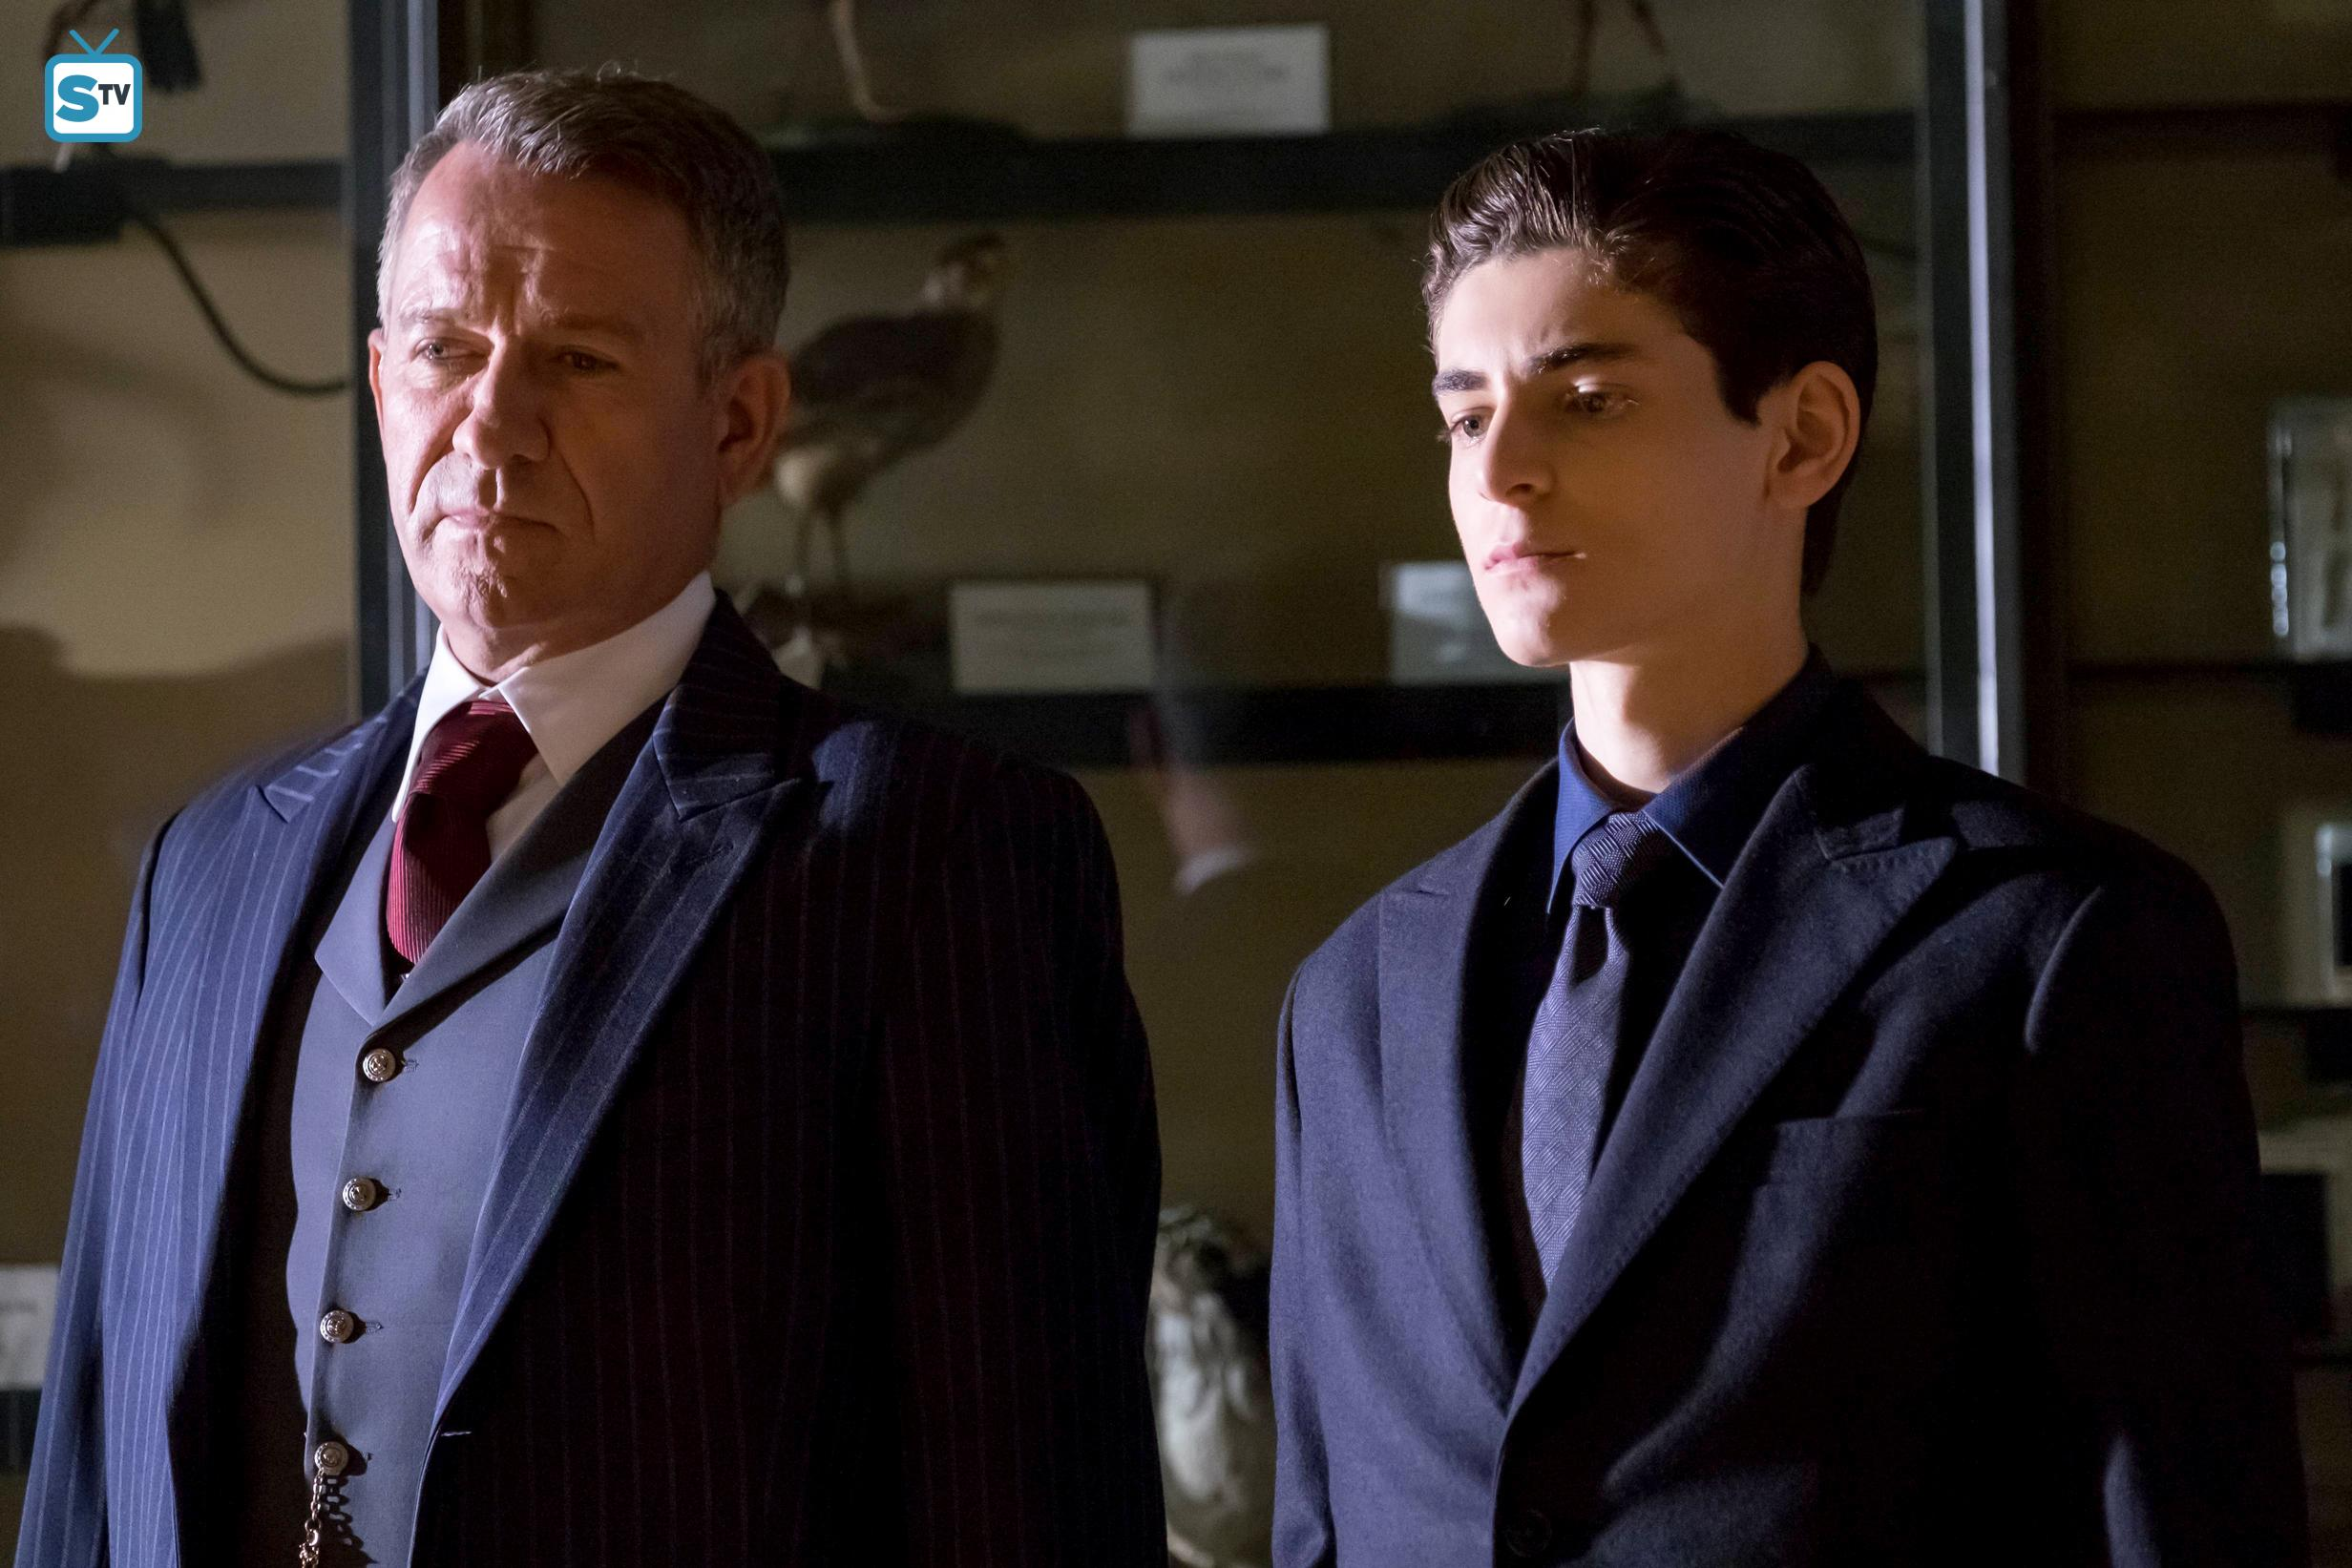 Gotham season 4 episode 4 the demons head recap review sean pertwee and david mazouz in the a dark knight the demons head ccuart Image collections